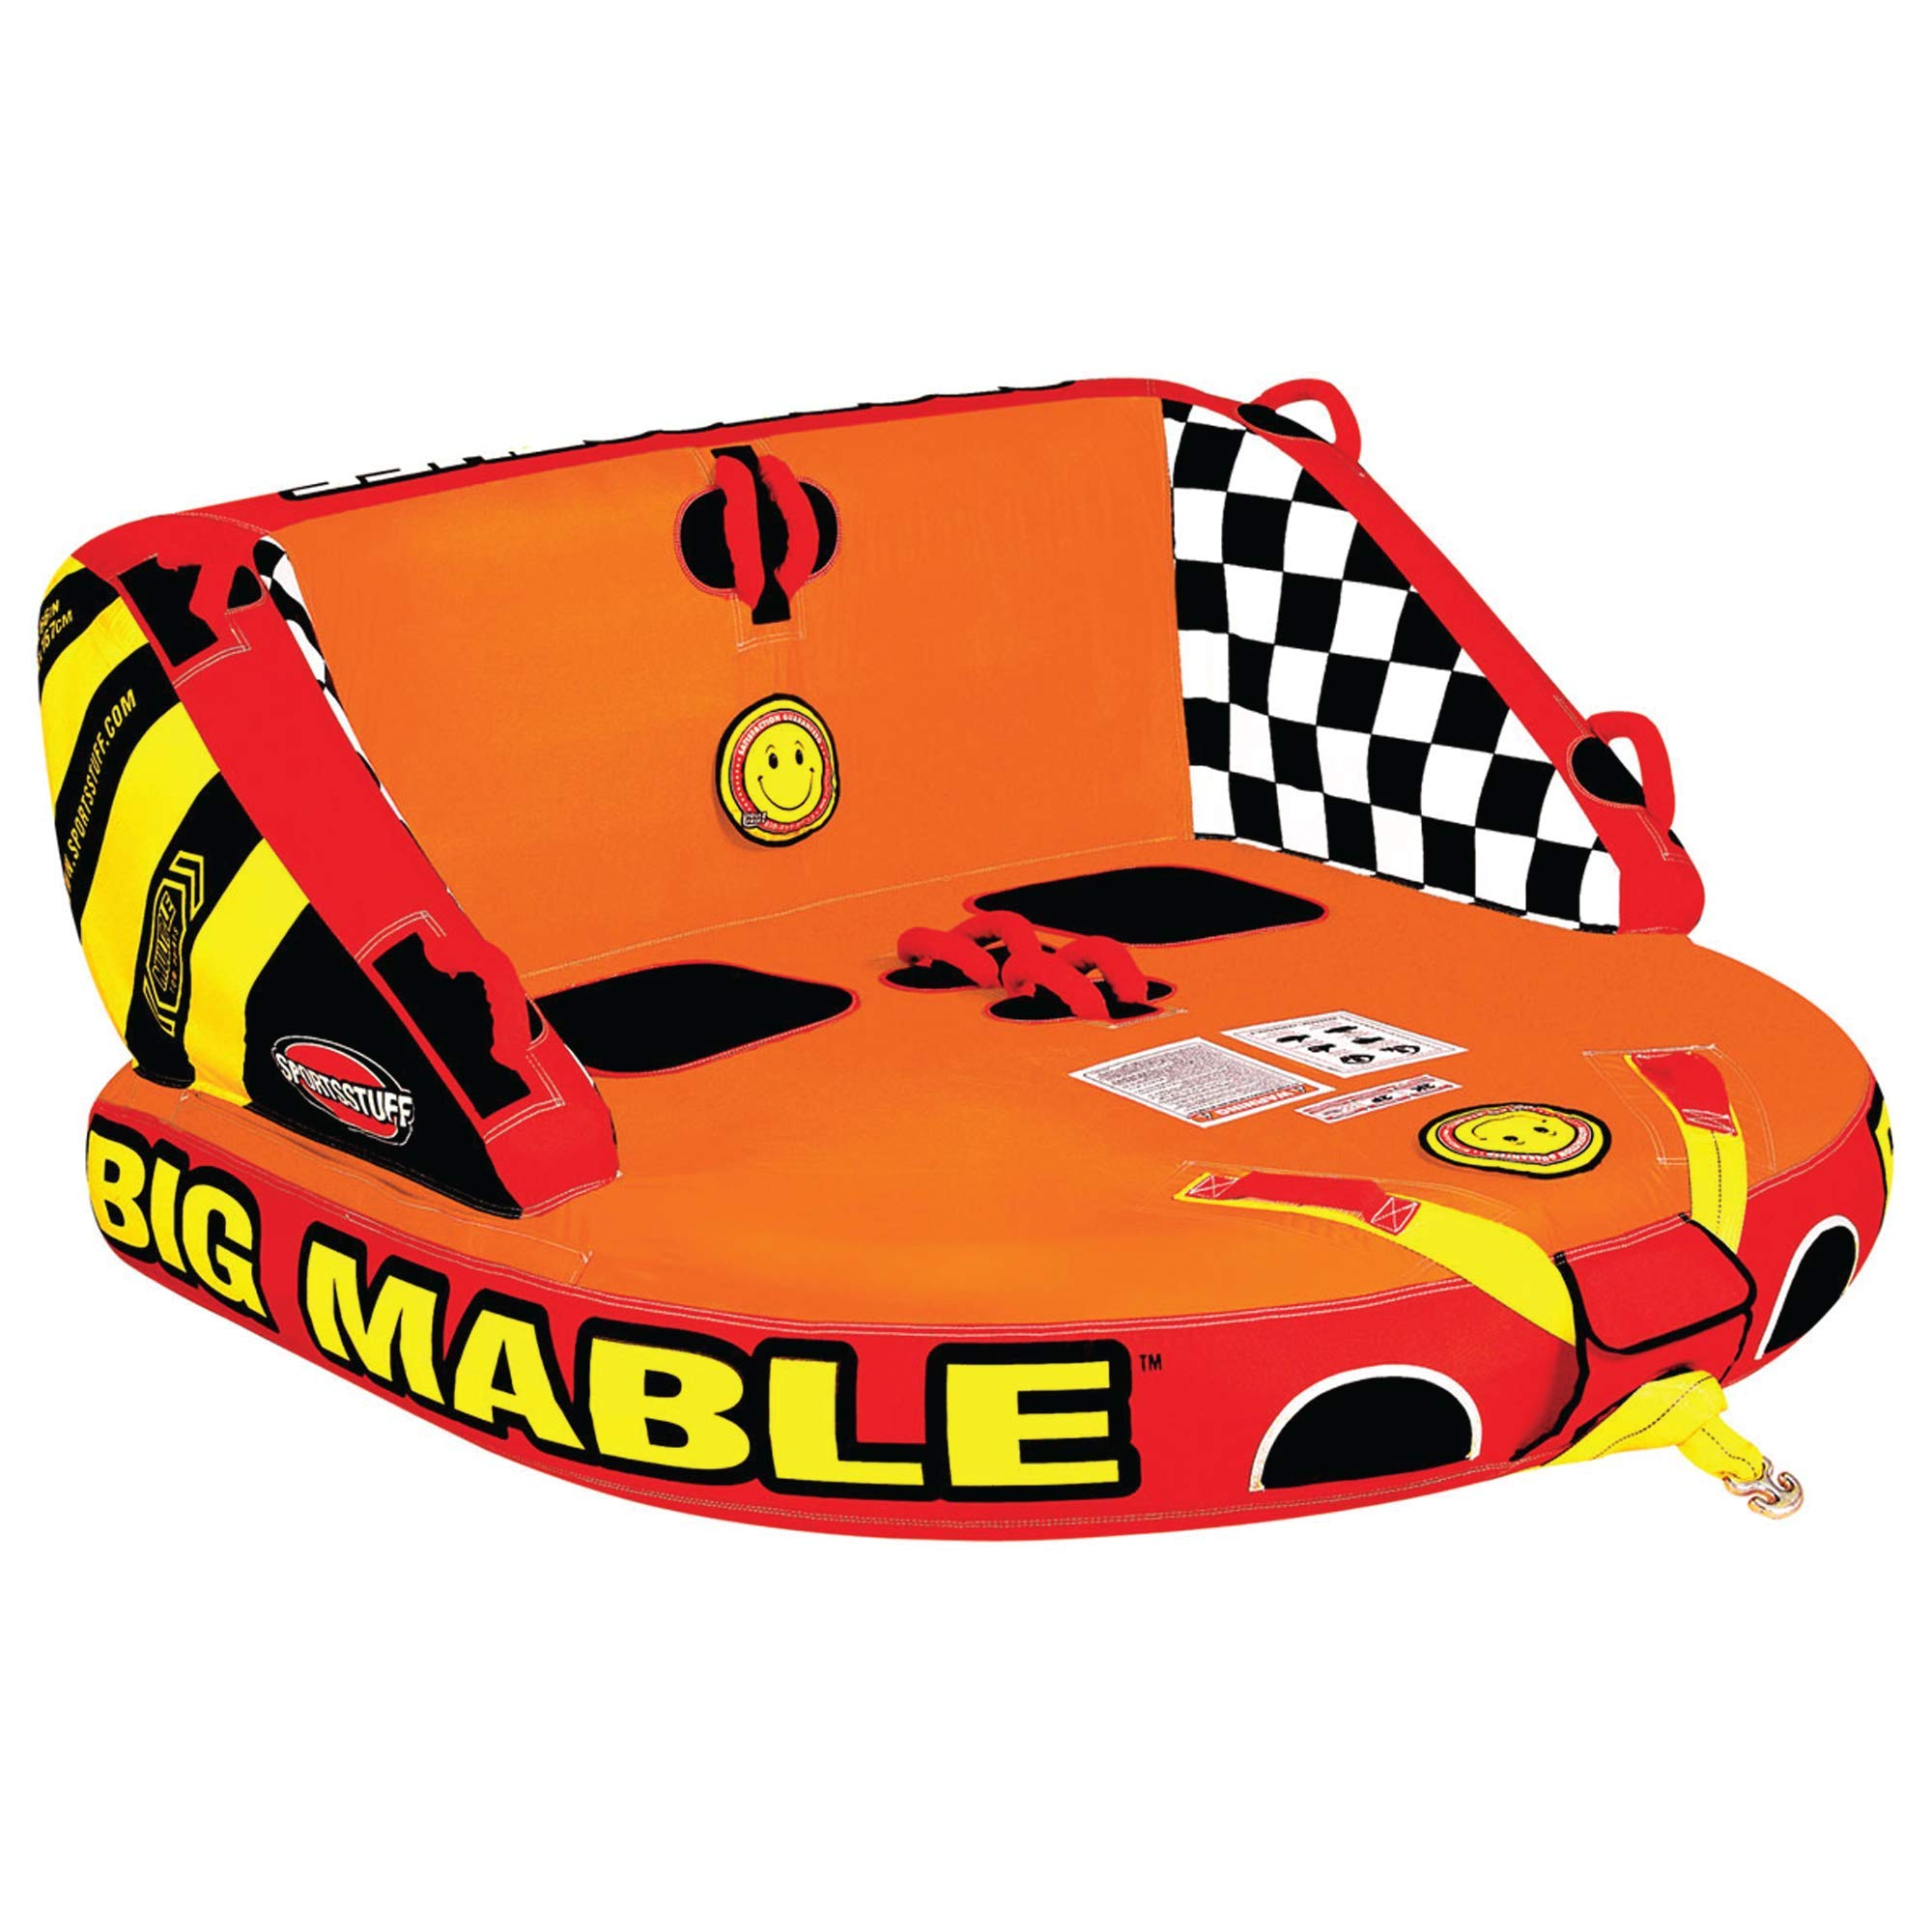 Sportsstuff Big Mable  1-2 Rider Towable Tube for Boating by SportsStuff